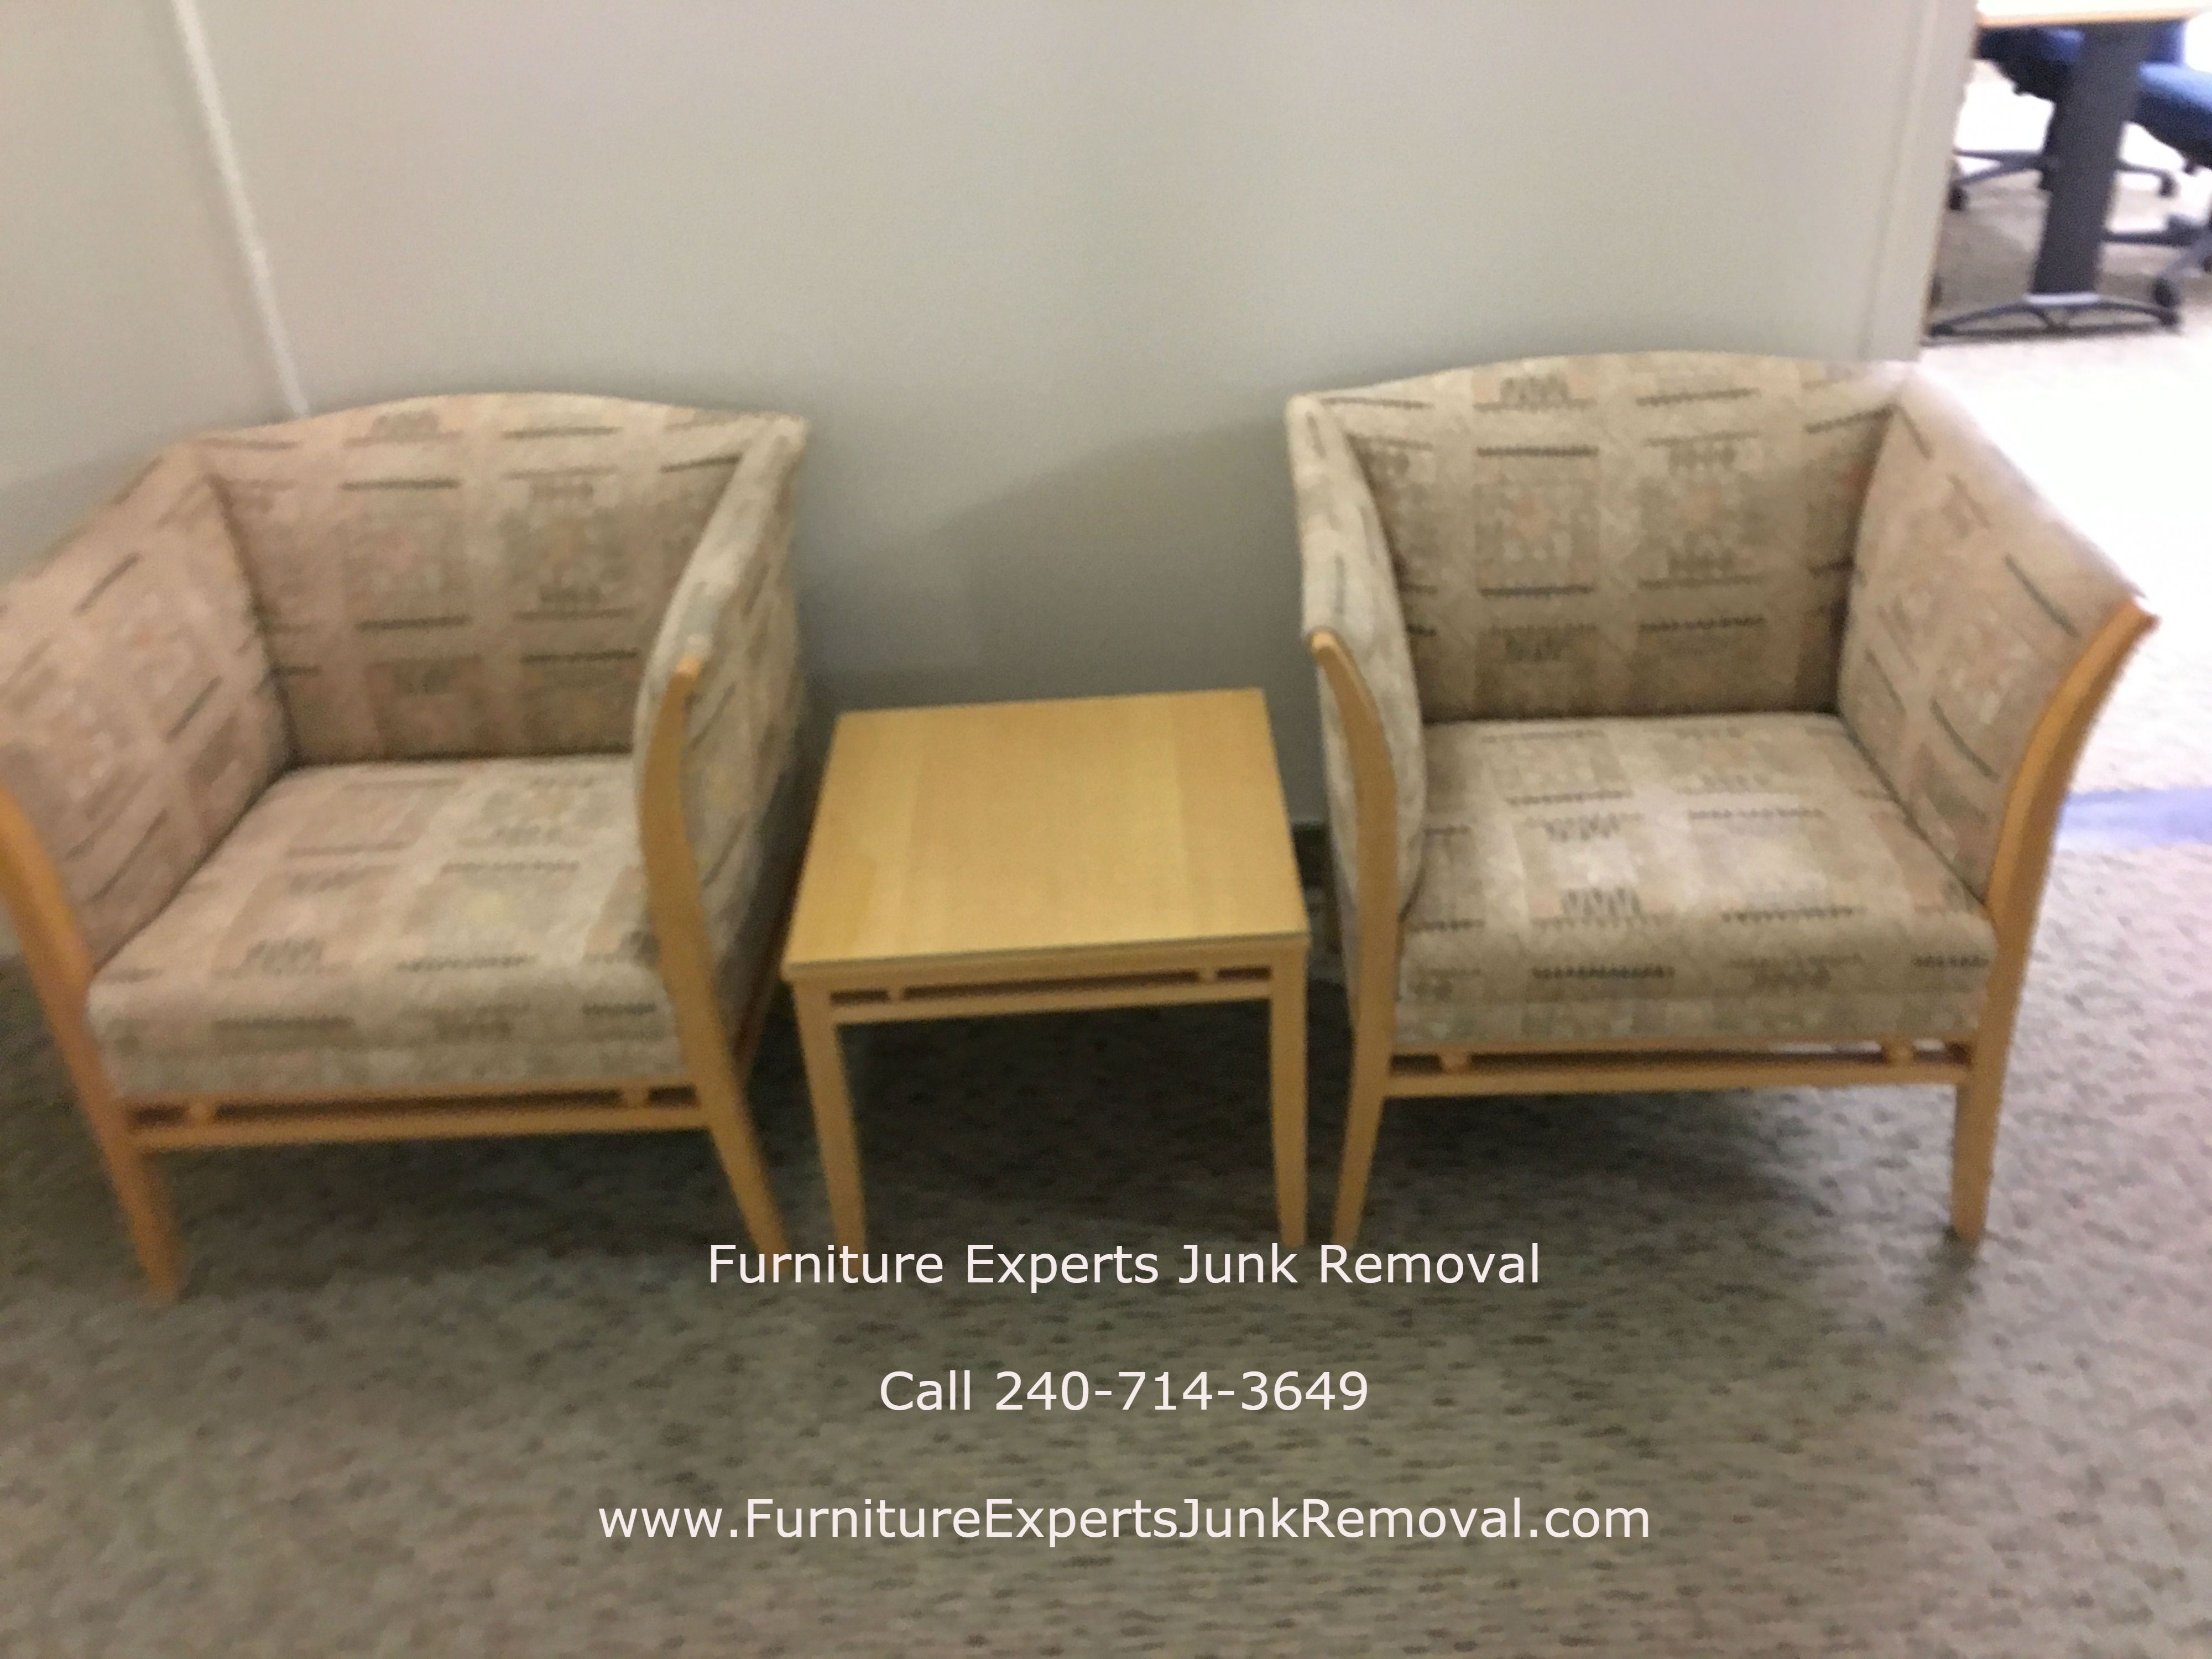 Furniture Experts Junk Removal Furniture Disassembly Furniture